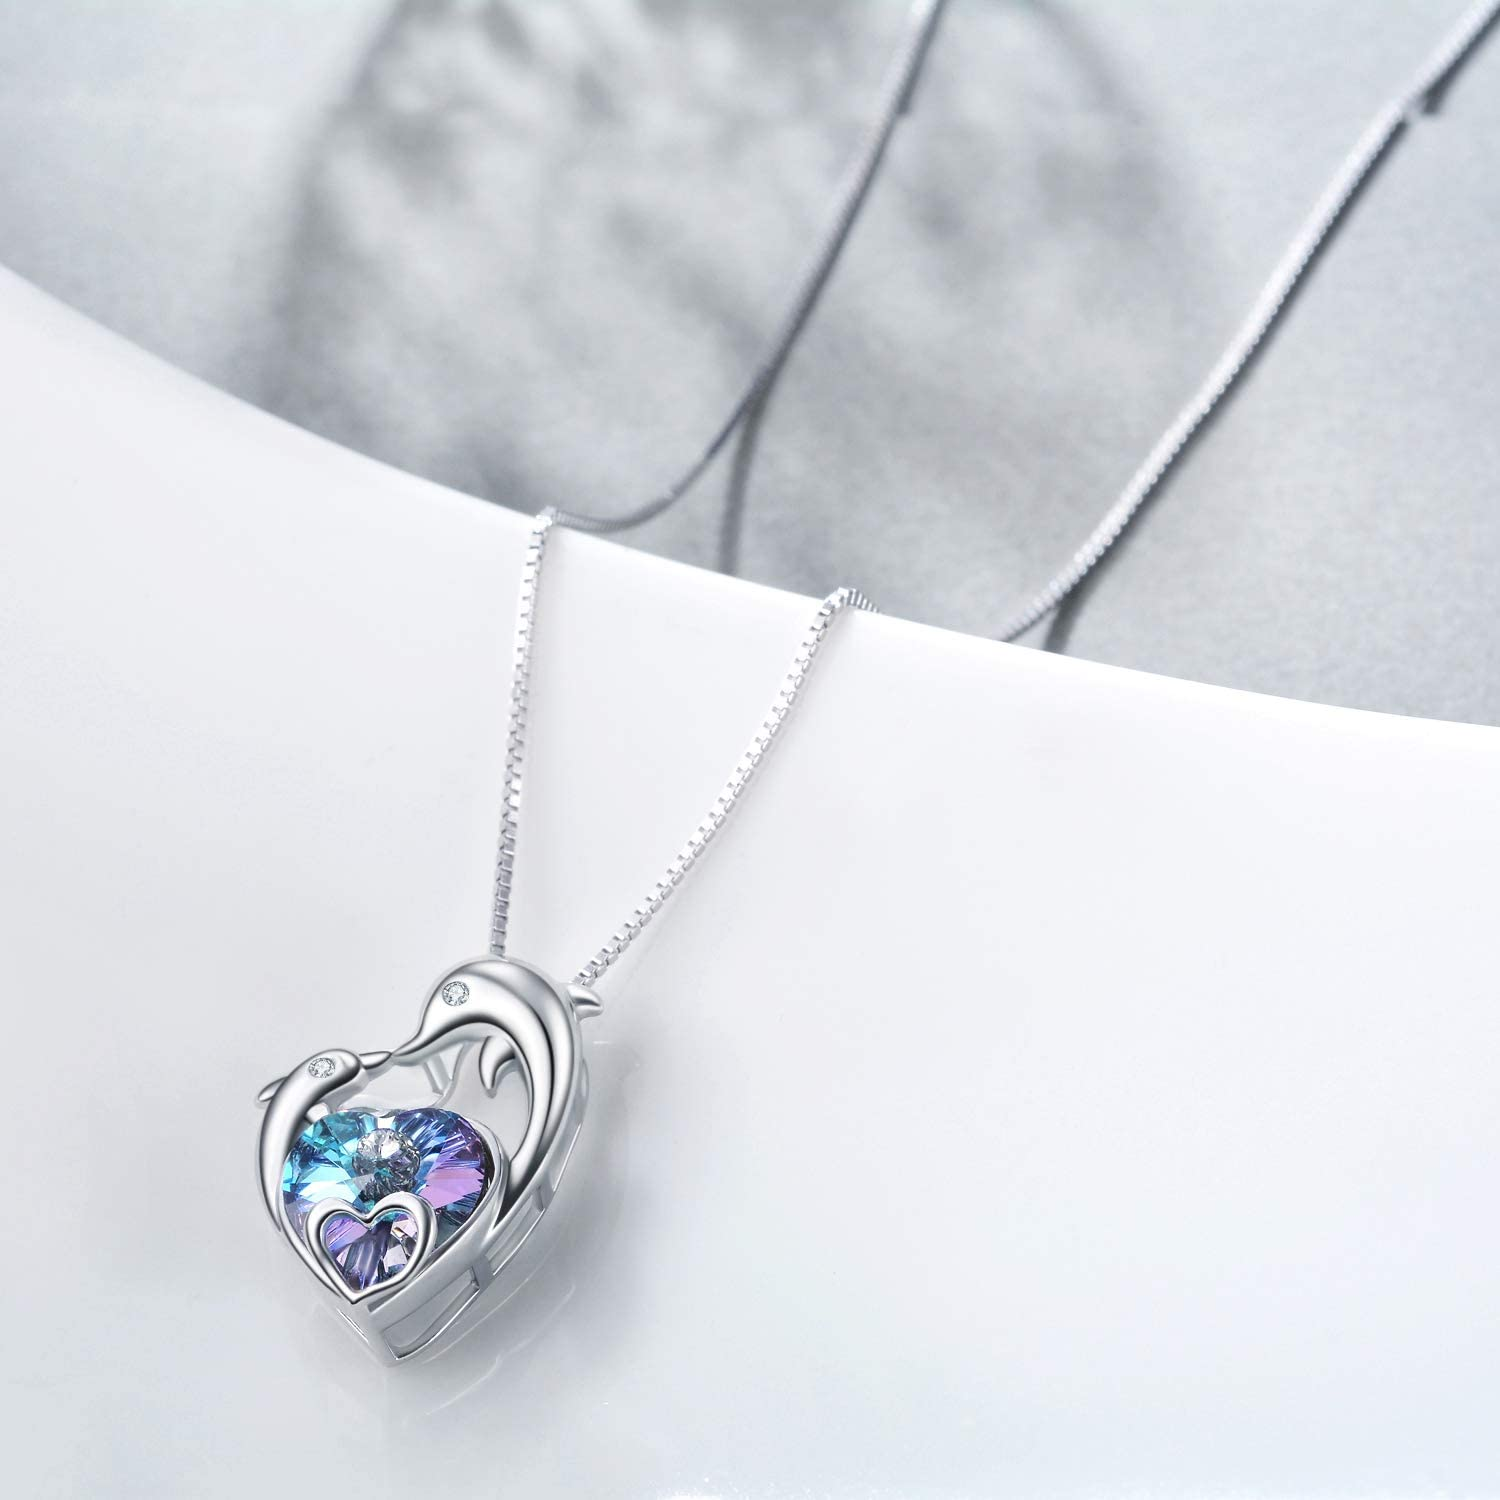 Silver Charm necklace gardening theme with Channel crystalAmethyst Mothers Day